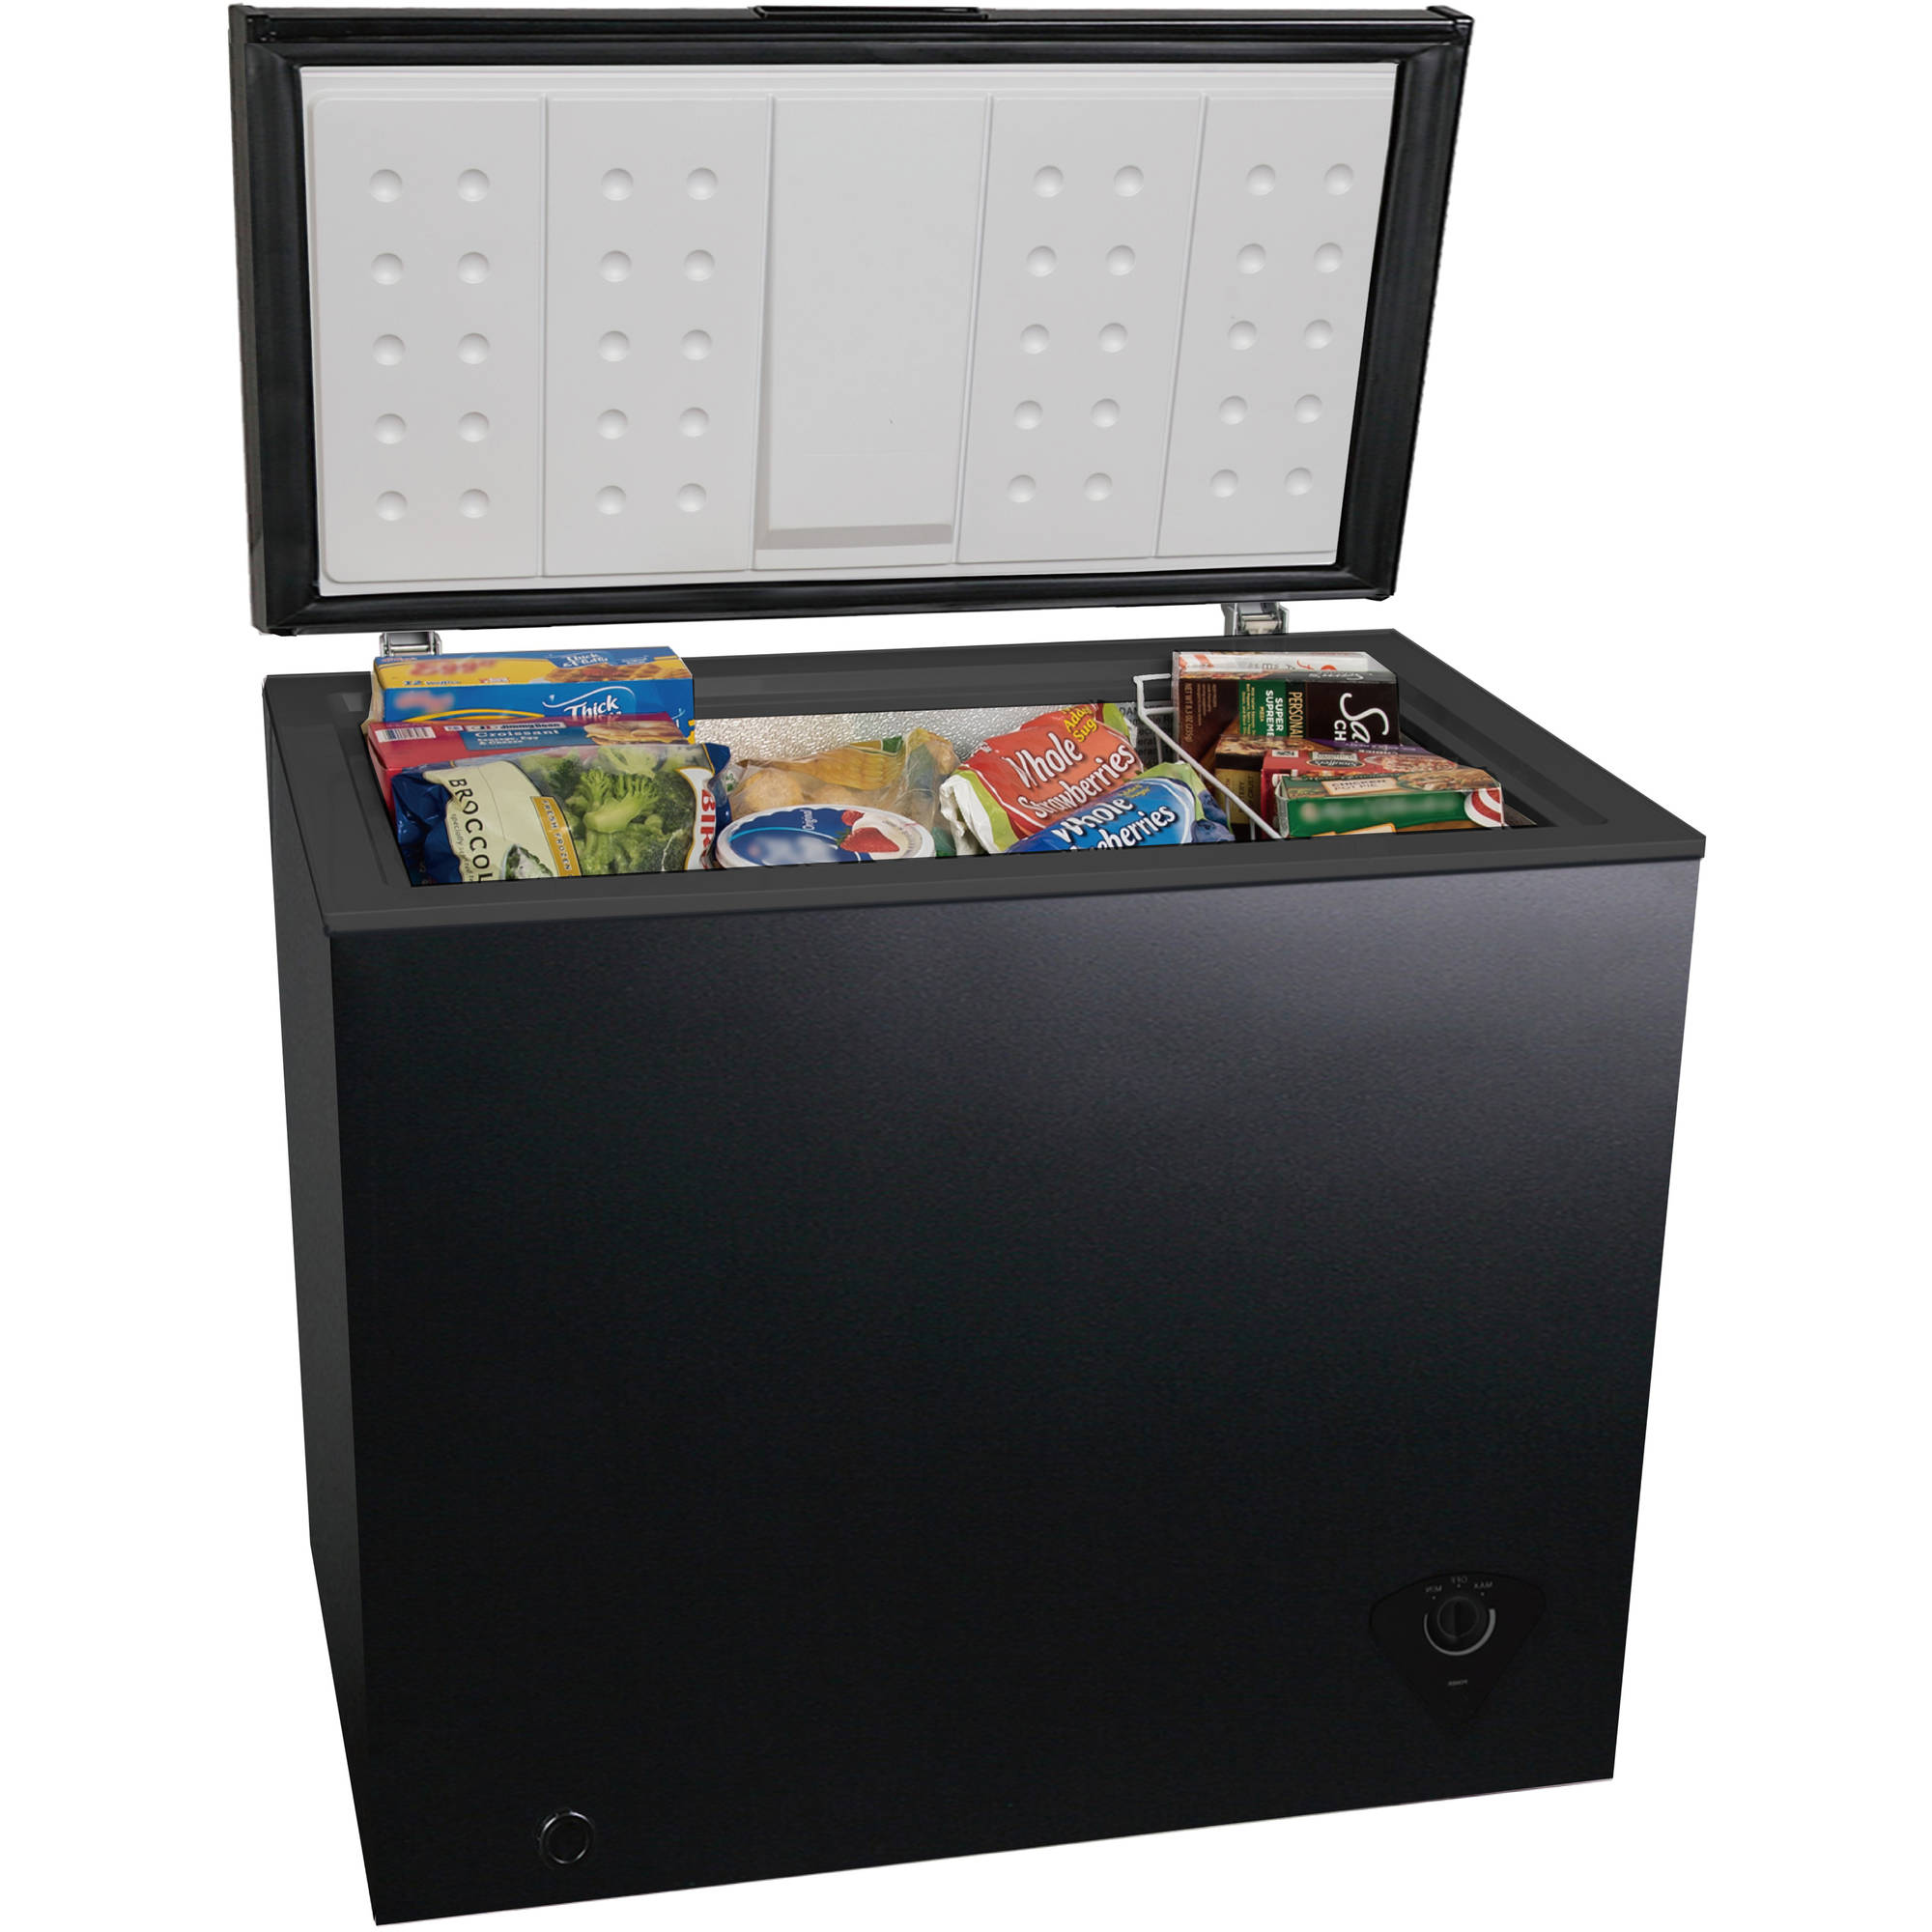 7 0 cu ft chest deep freezer upright compact dorm. Black Bedroom Furniture Sets. Home Design Ideas